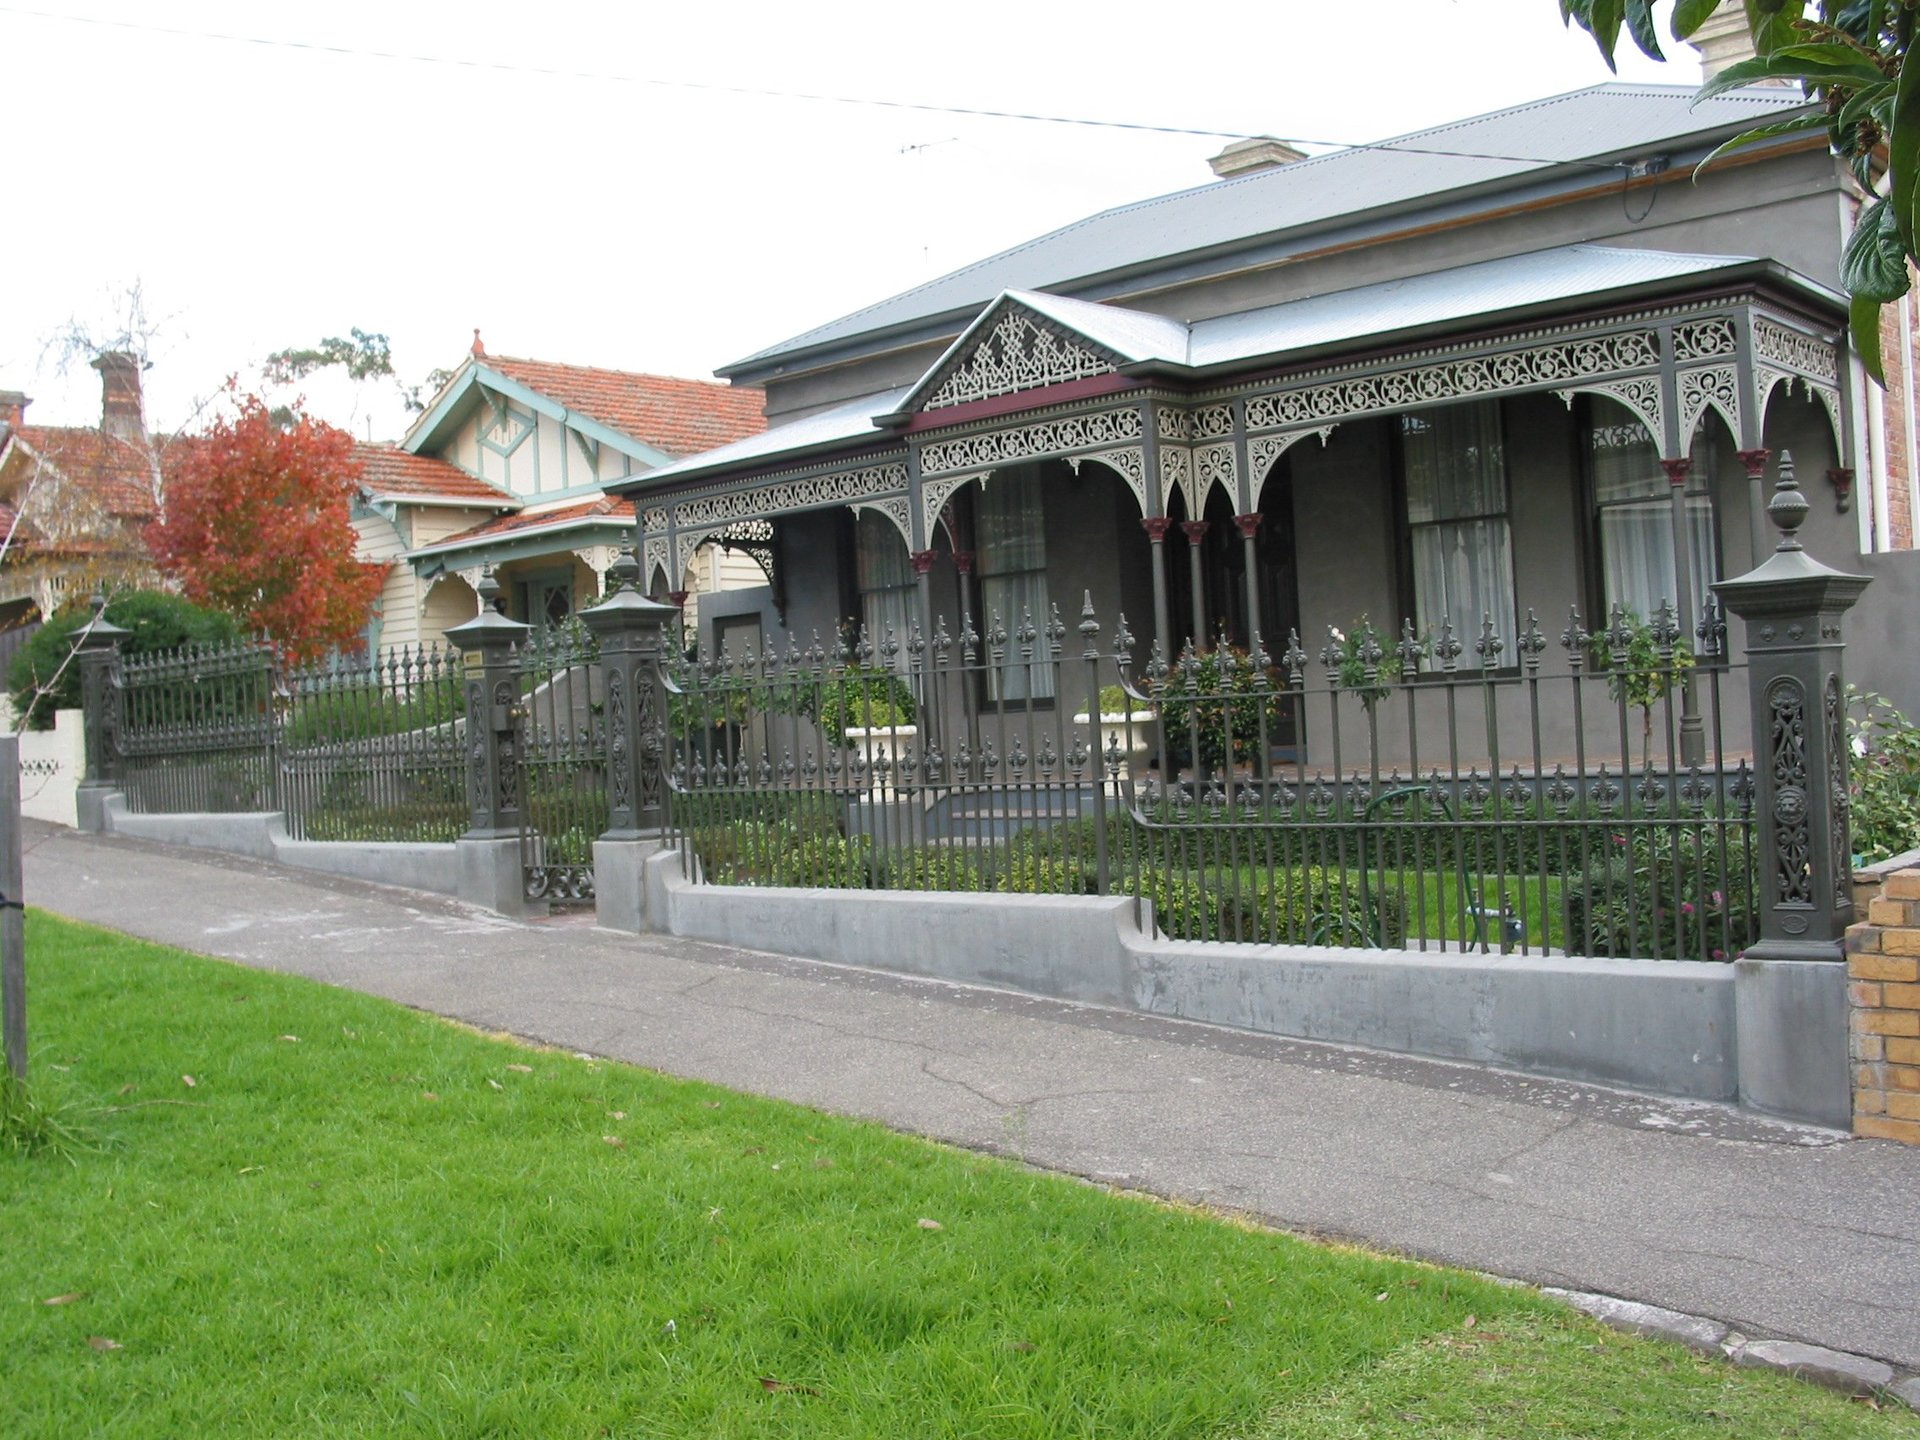 fence and verandah on fron of home